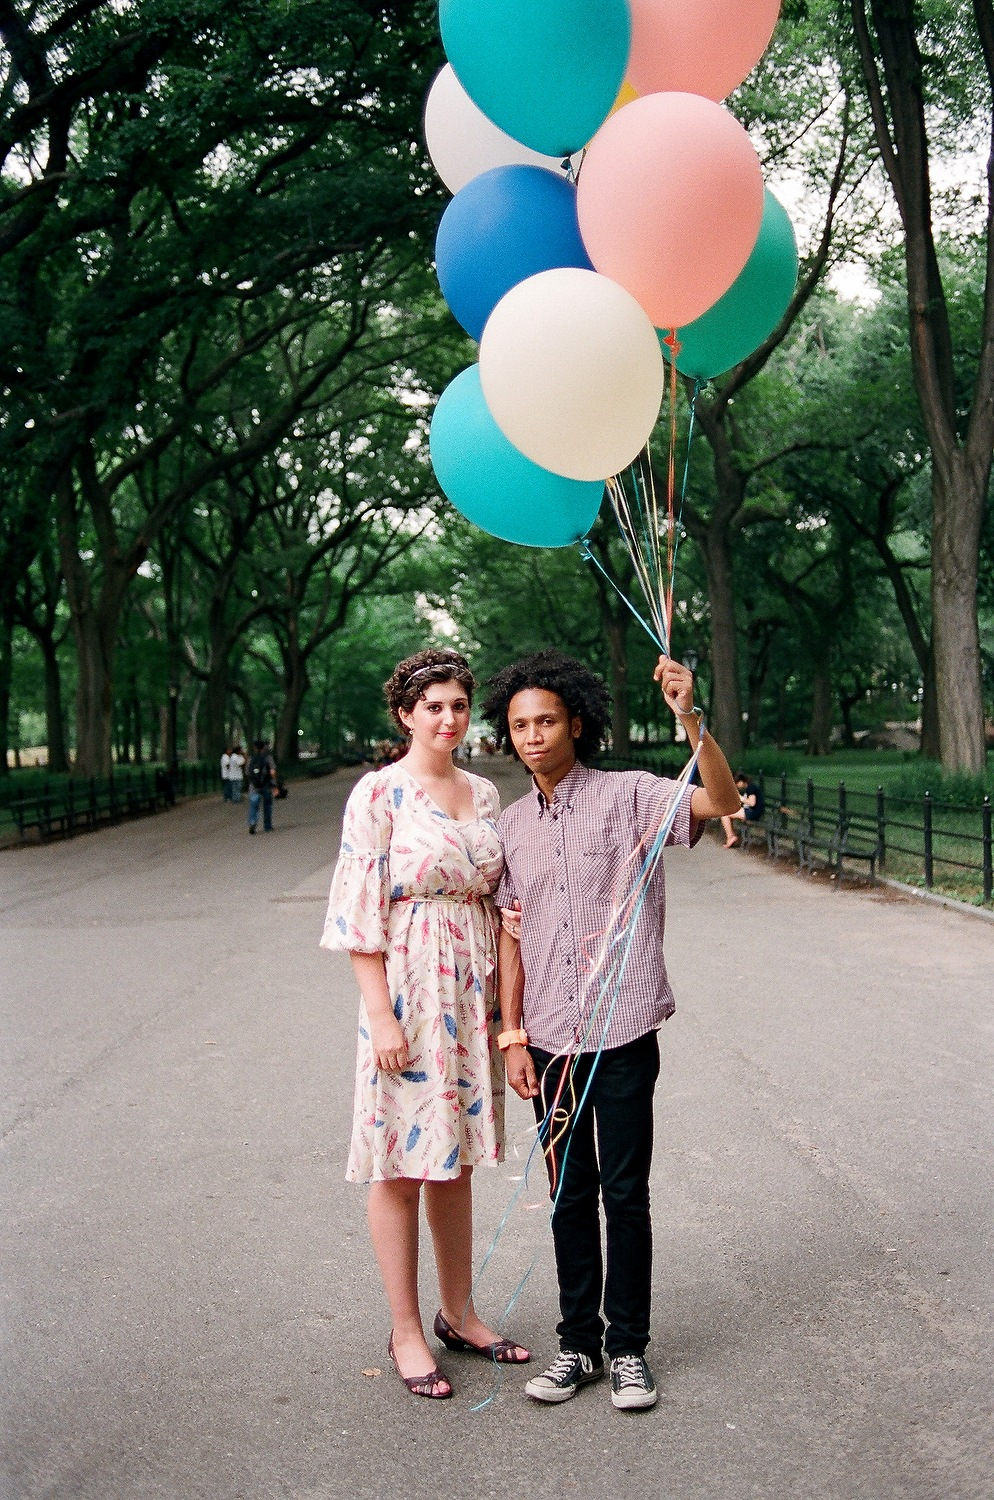 WWBM couple in central park with large balloons